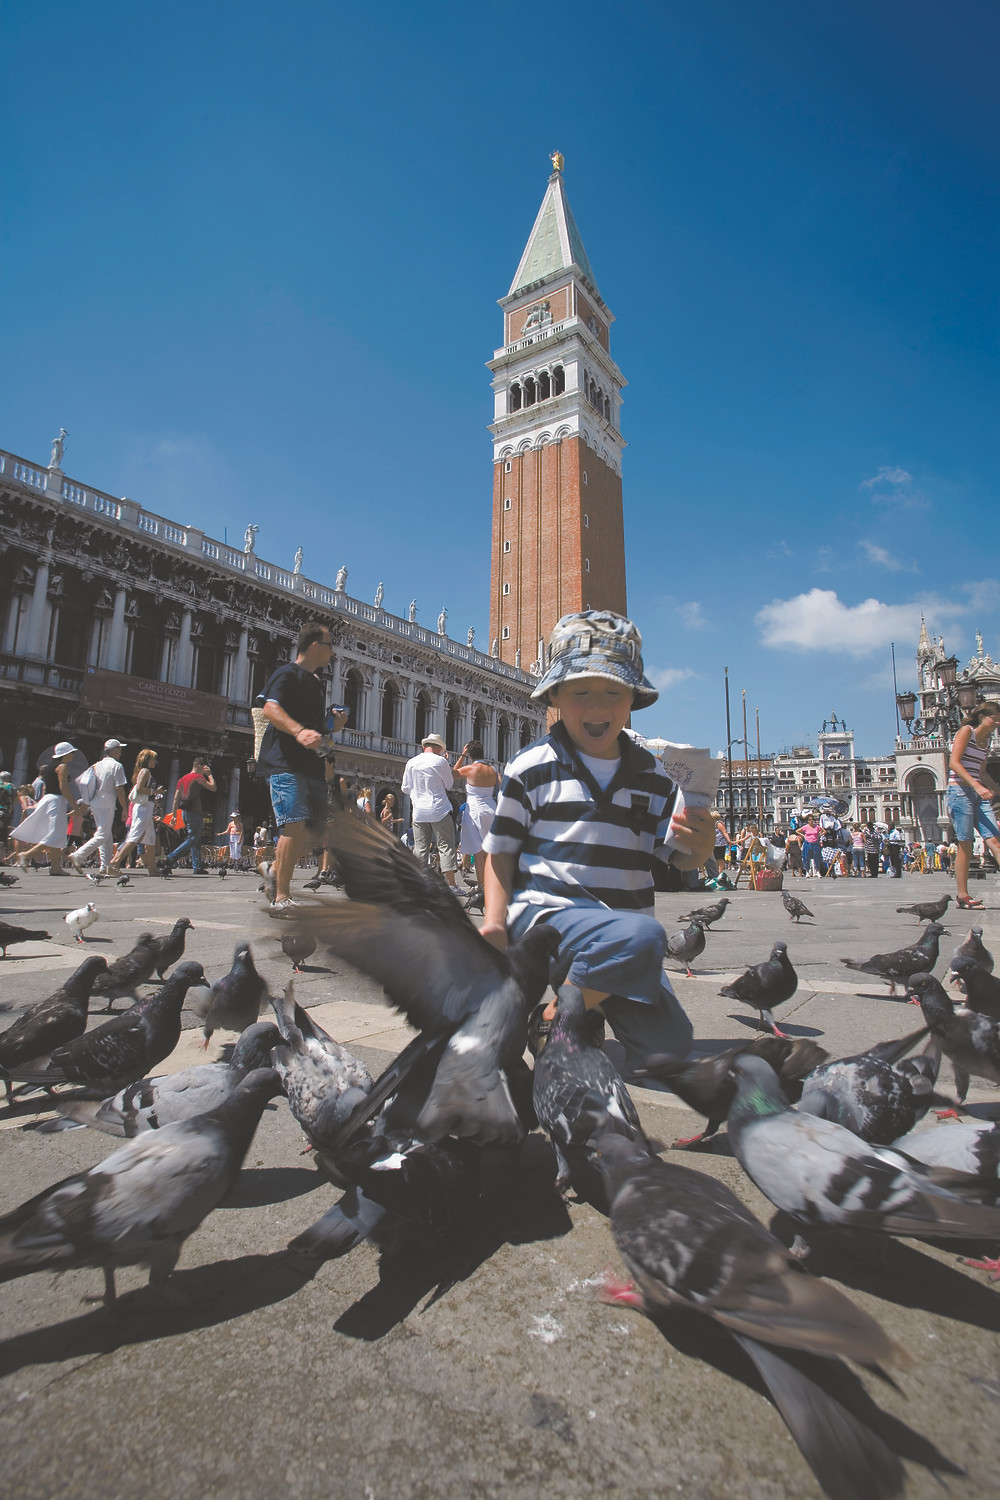 Small boy on holiday in St Mark's Square, Venice